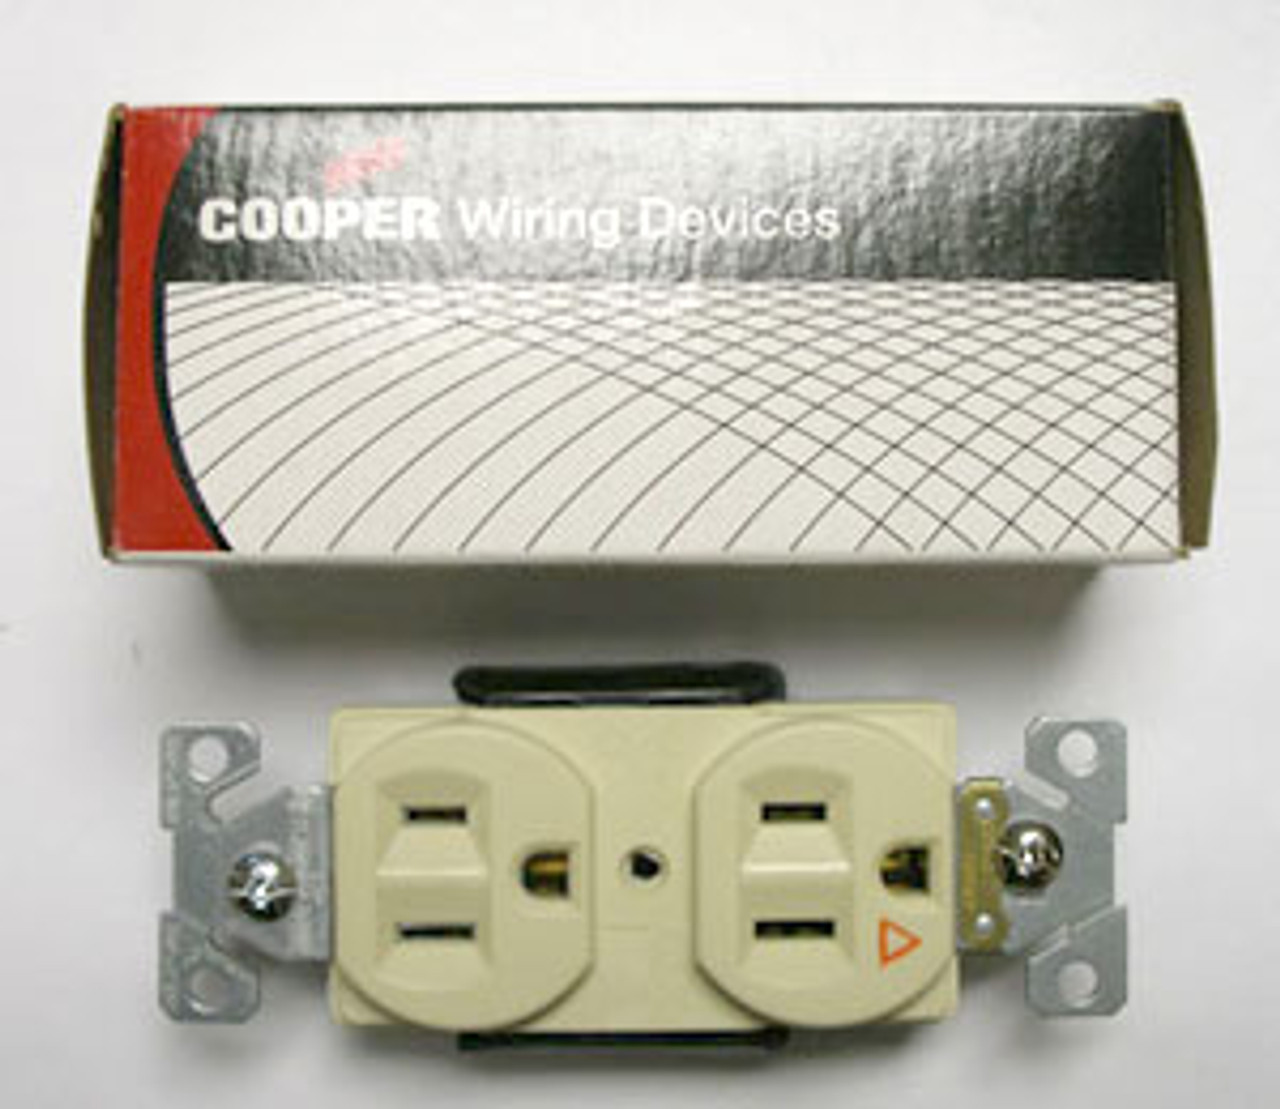 Cooper IG5262V 15A Nema5-15 Ivory Receptacle Sold in Box of 5